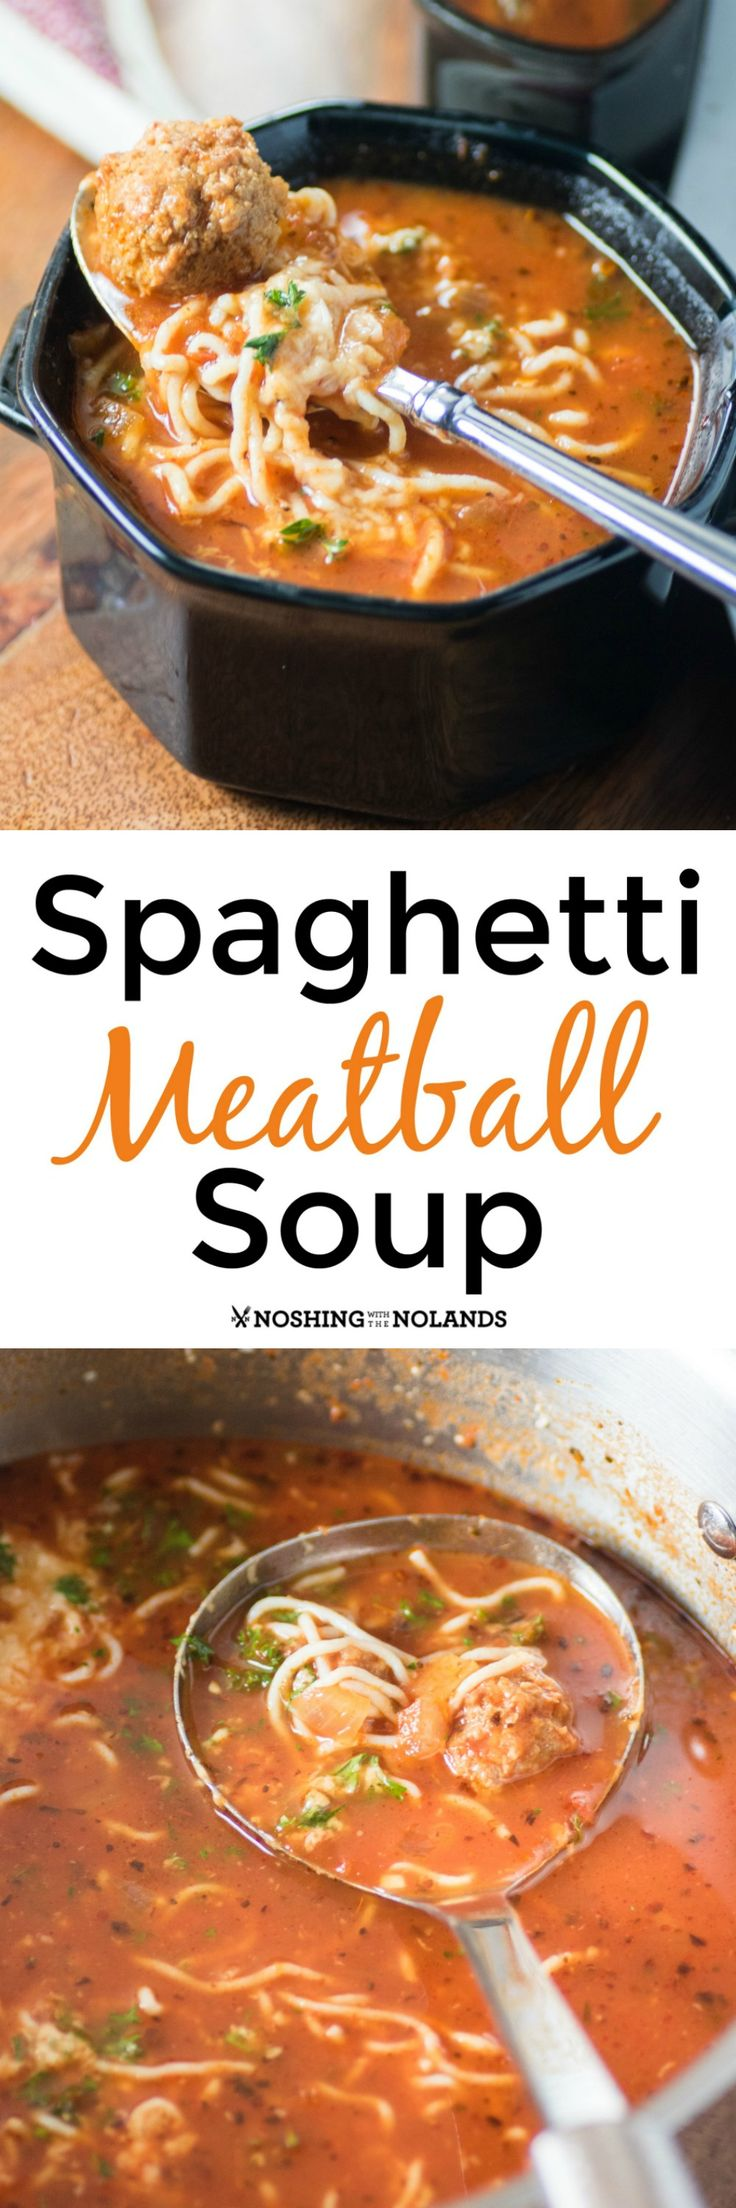 Spaghetti Meatball Soup by Noshing With The Nolands is a hearty soup you can enjoy any night of the week. Your family will want to have it again and again! #ShiratakiNoodles #HouseFoods #ad